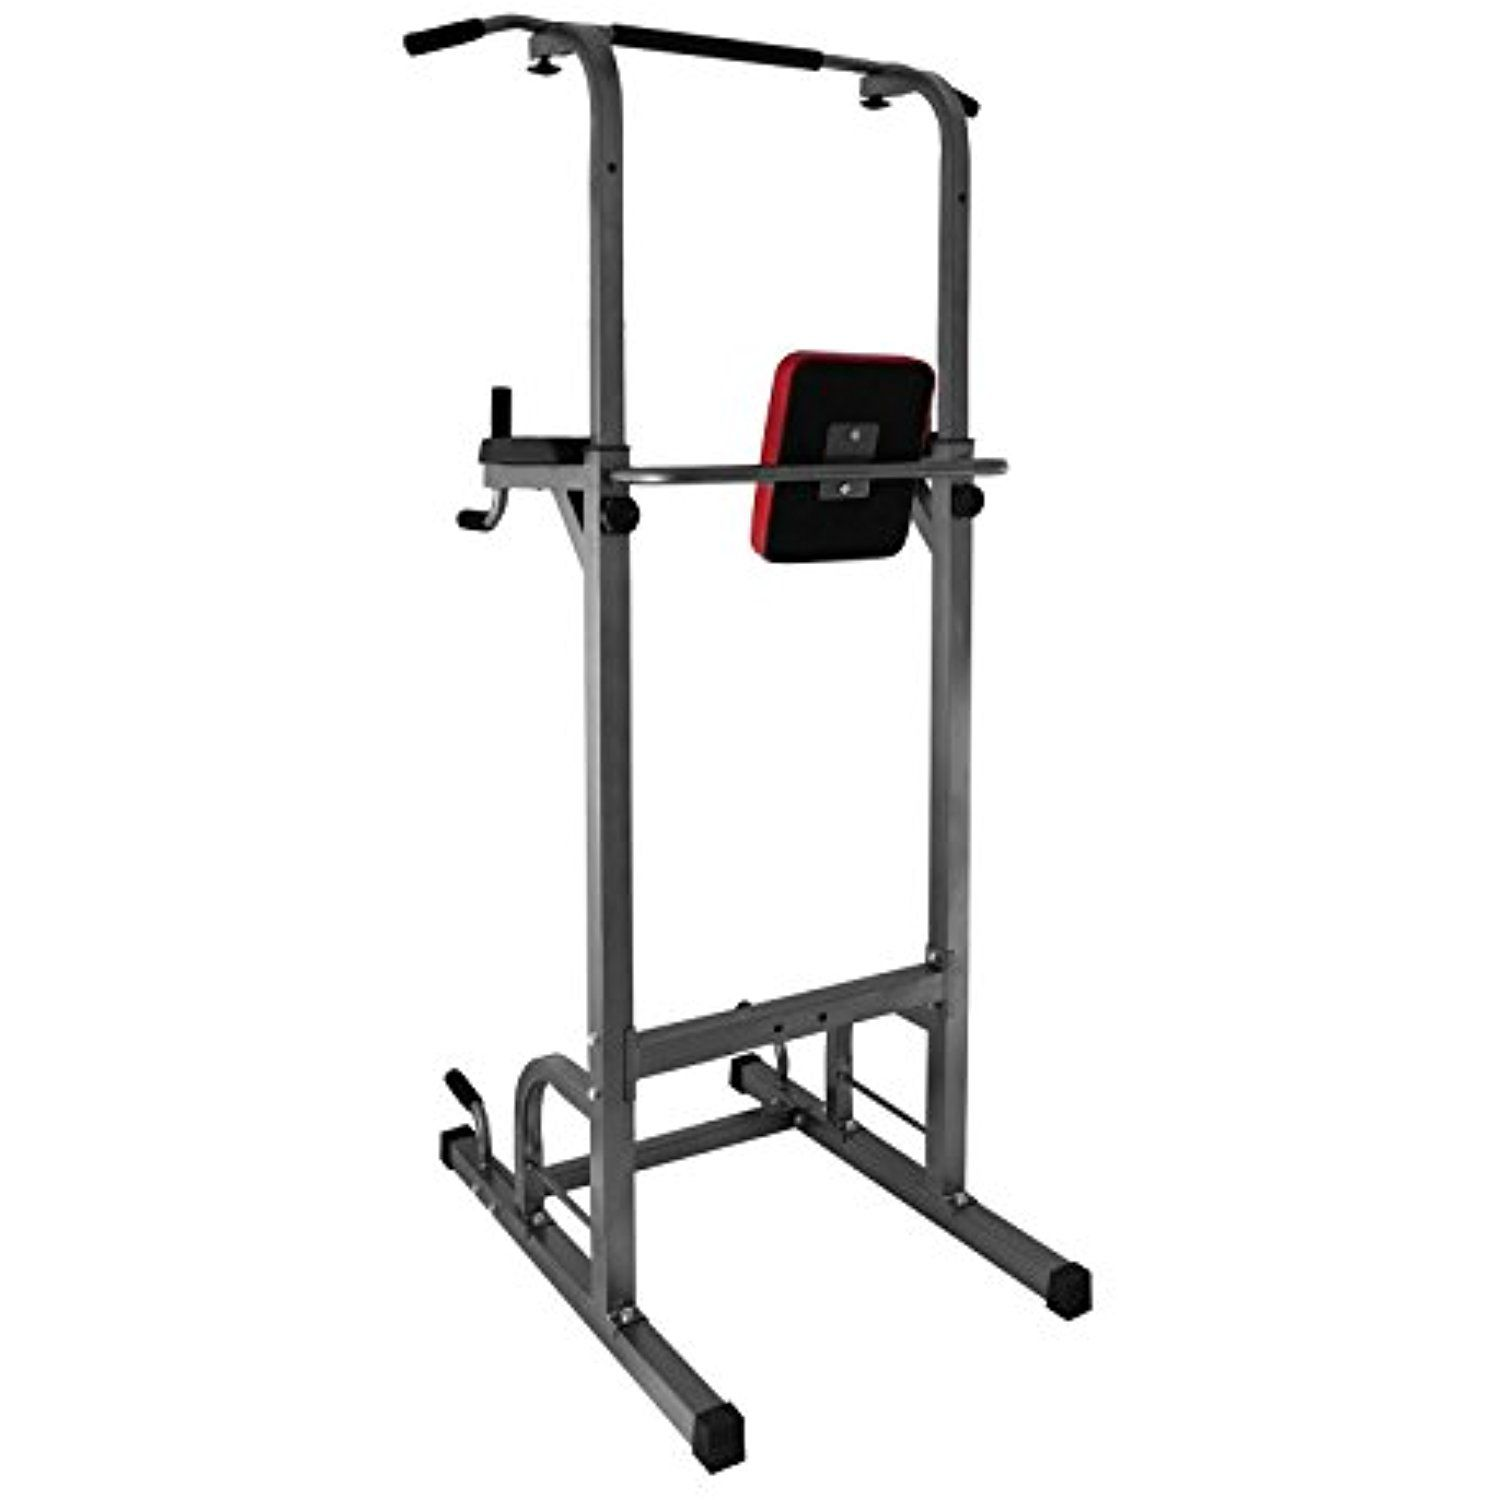 Lovshare Multistation Height Adjustable 4 3ft 330lb Weight Bench Press 7 3ft 770lb Power Tower Dip Station Pull U Training Fitness Gym Gym Workouts Pull Up Bar